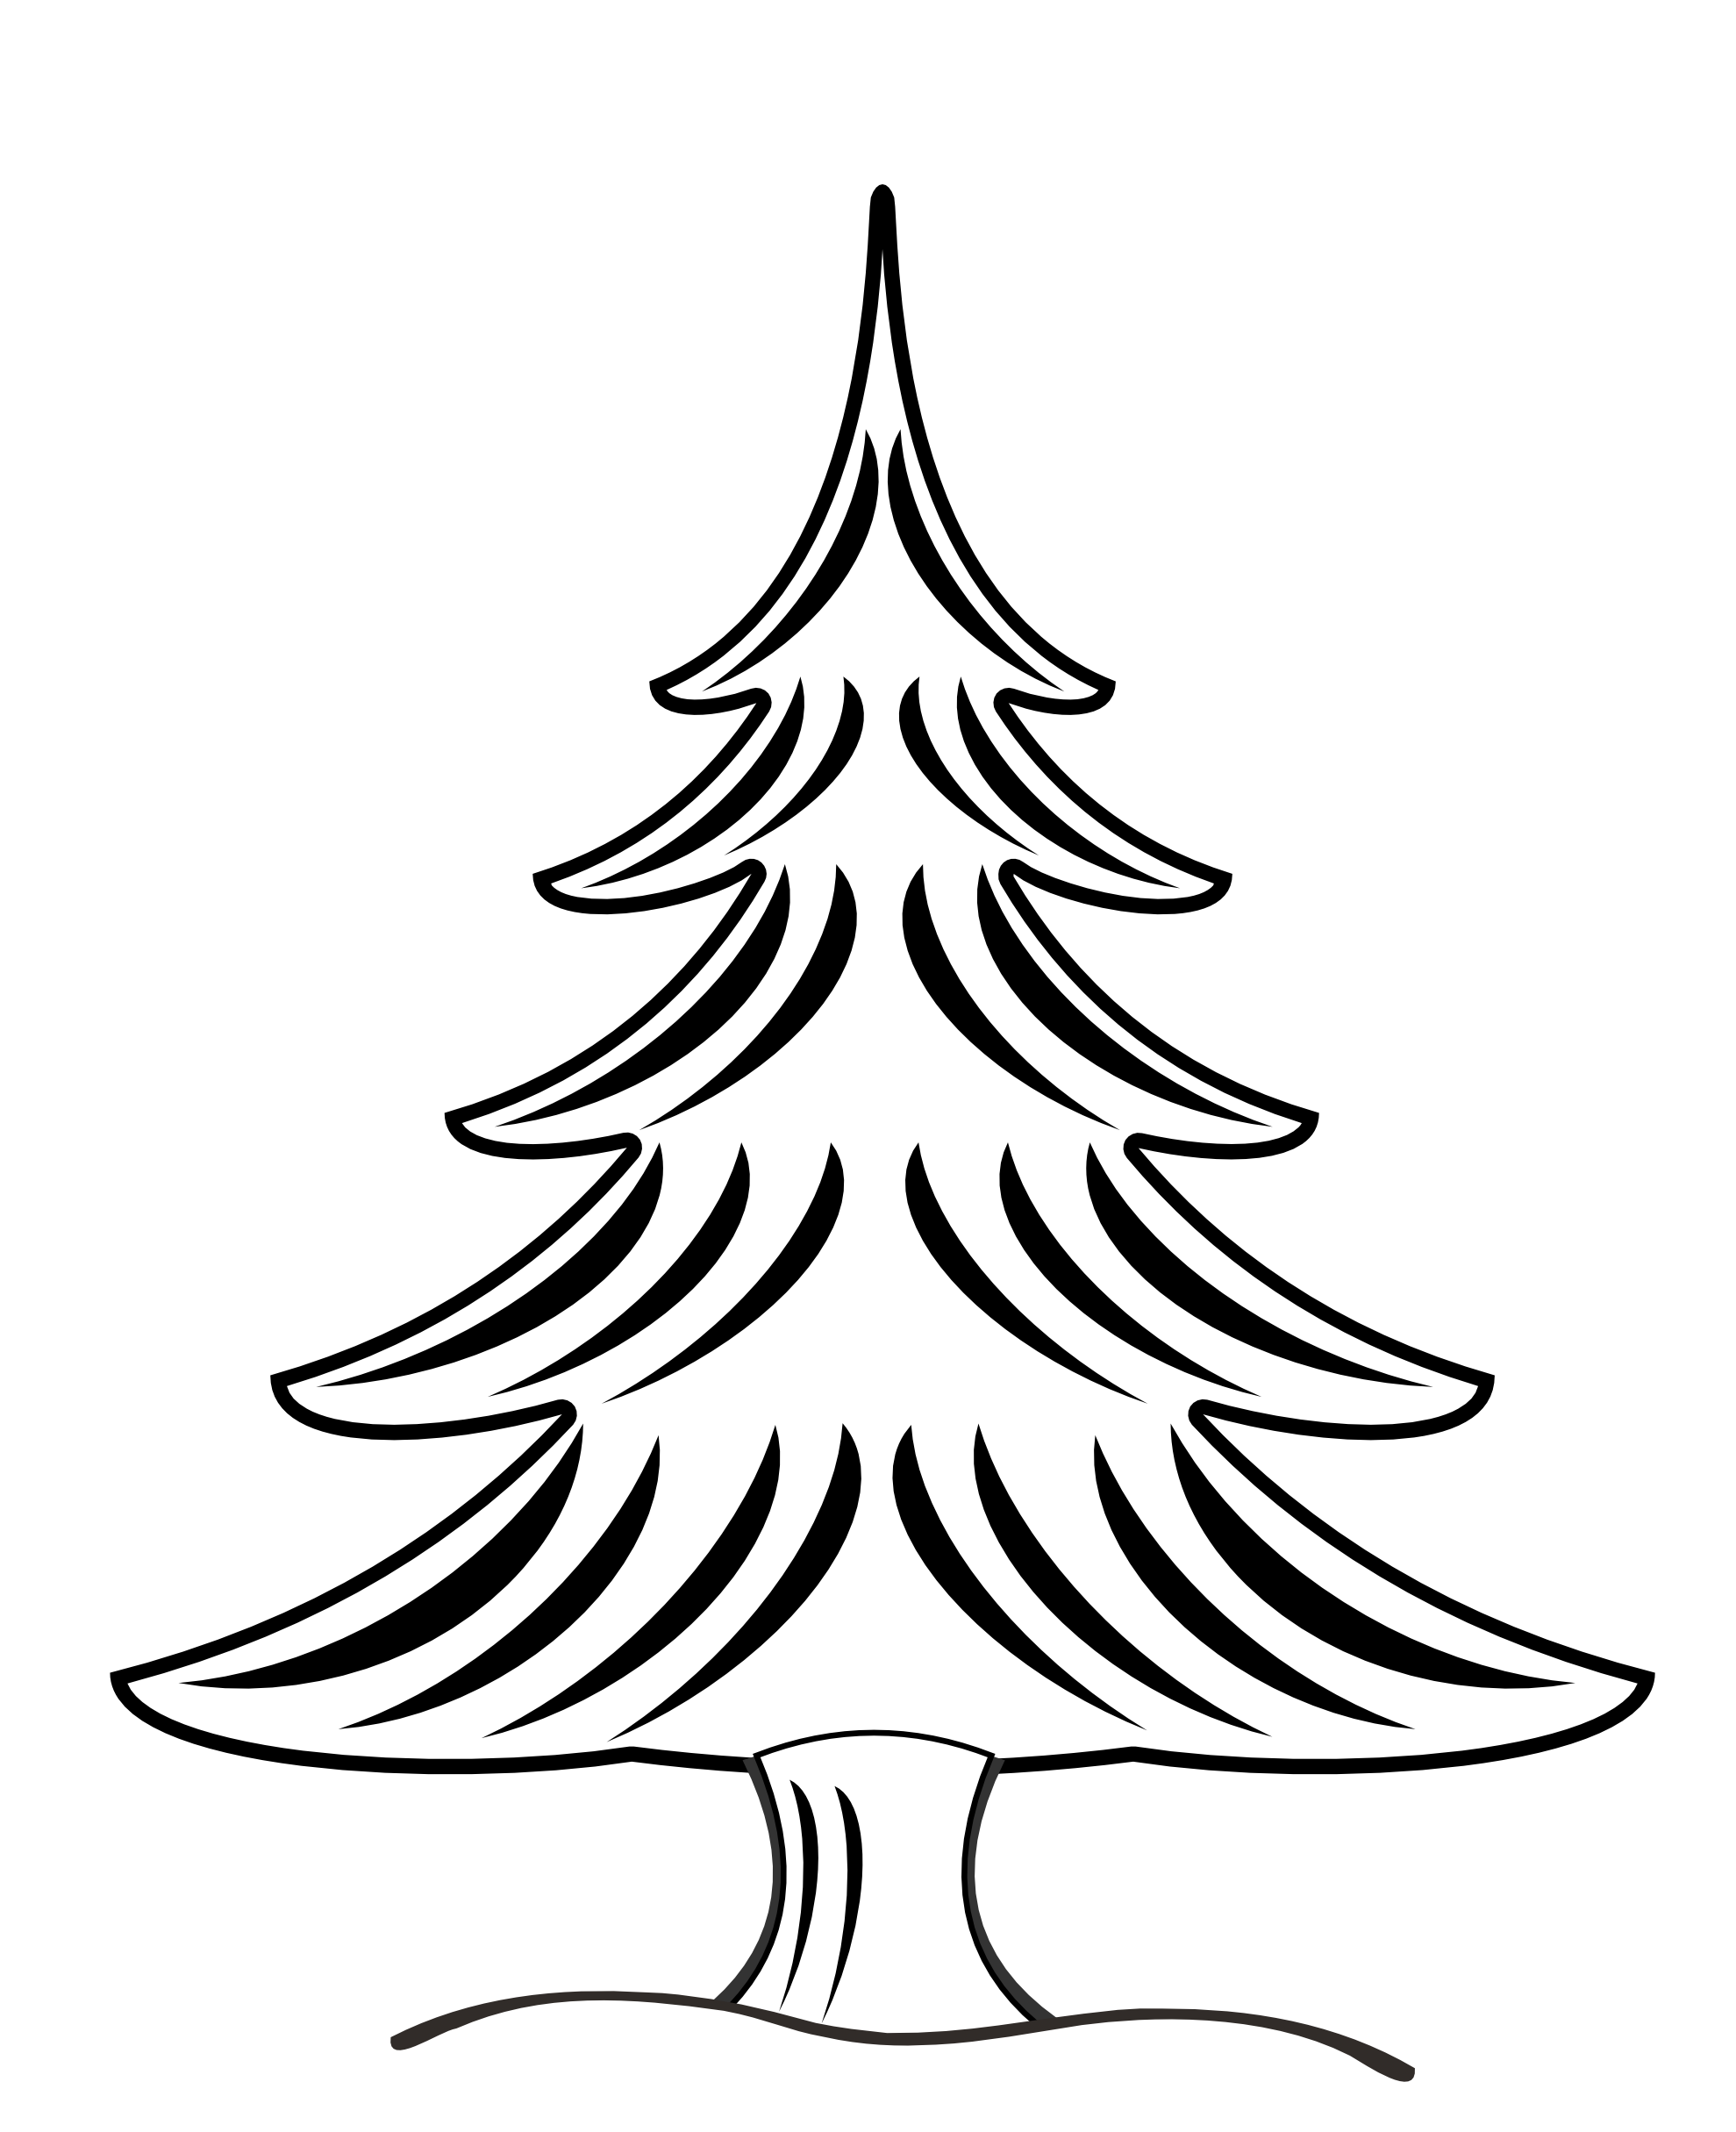 Best Christmas Tree Clipart Black And White #14638 ...